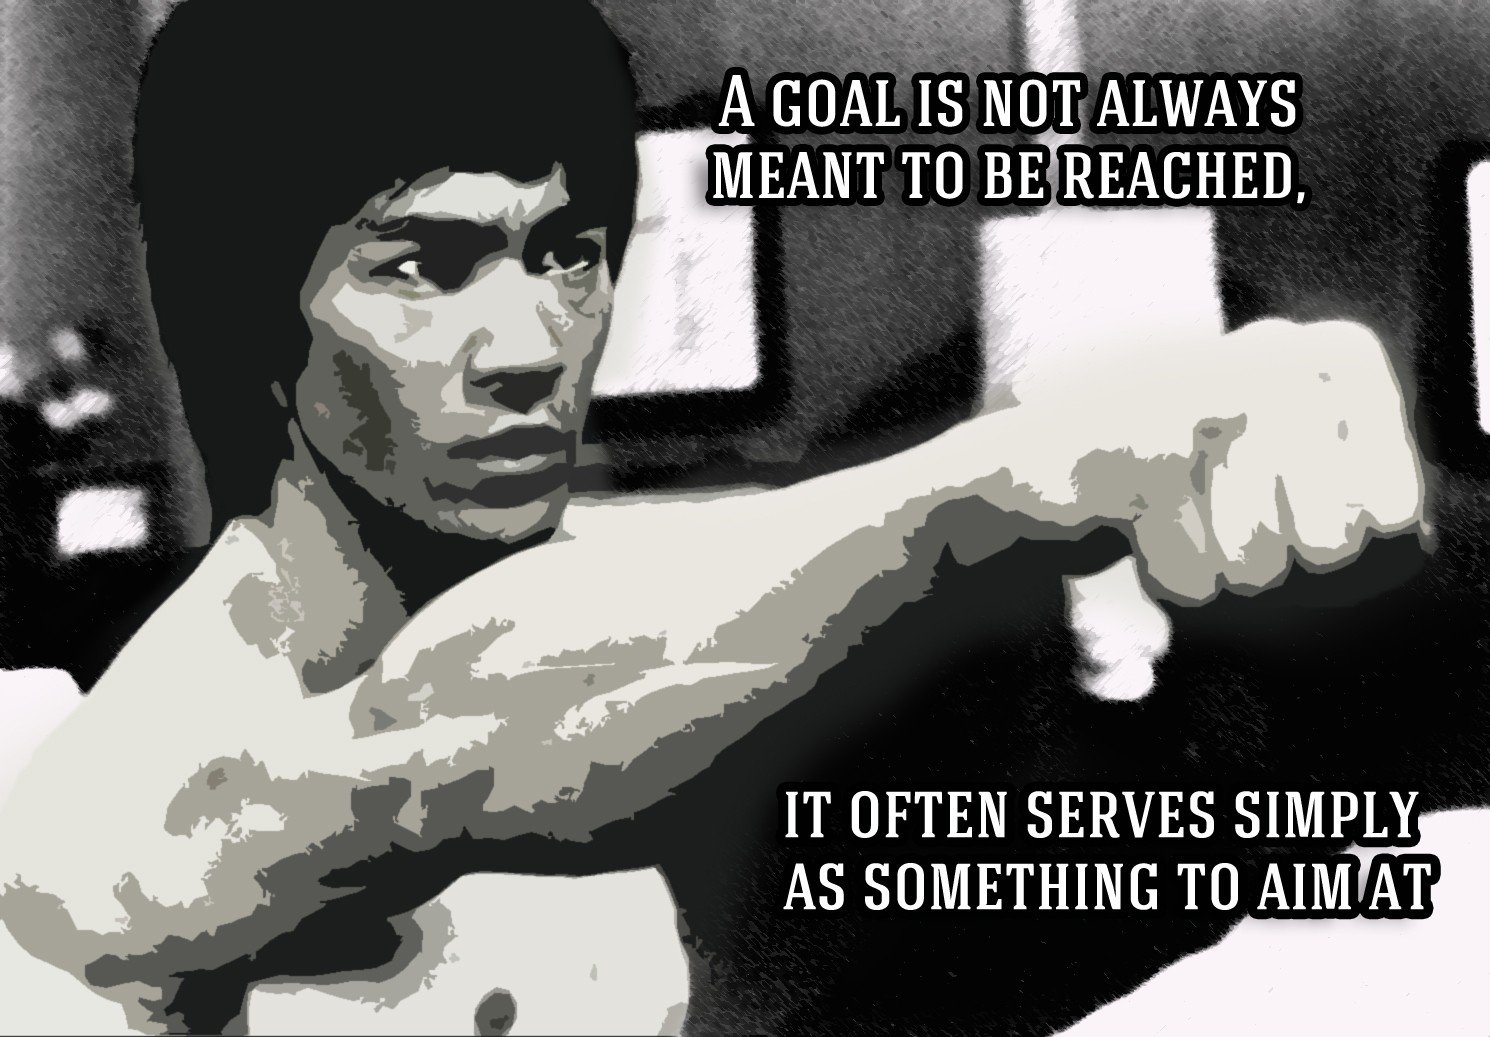 Bruce Lee Martial Arts Motivational Quote Hd Wallpapers Desktop And Mobile Images Photos